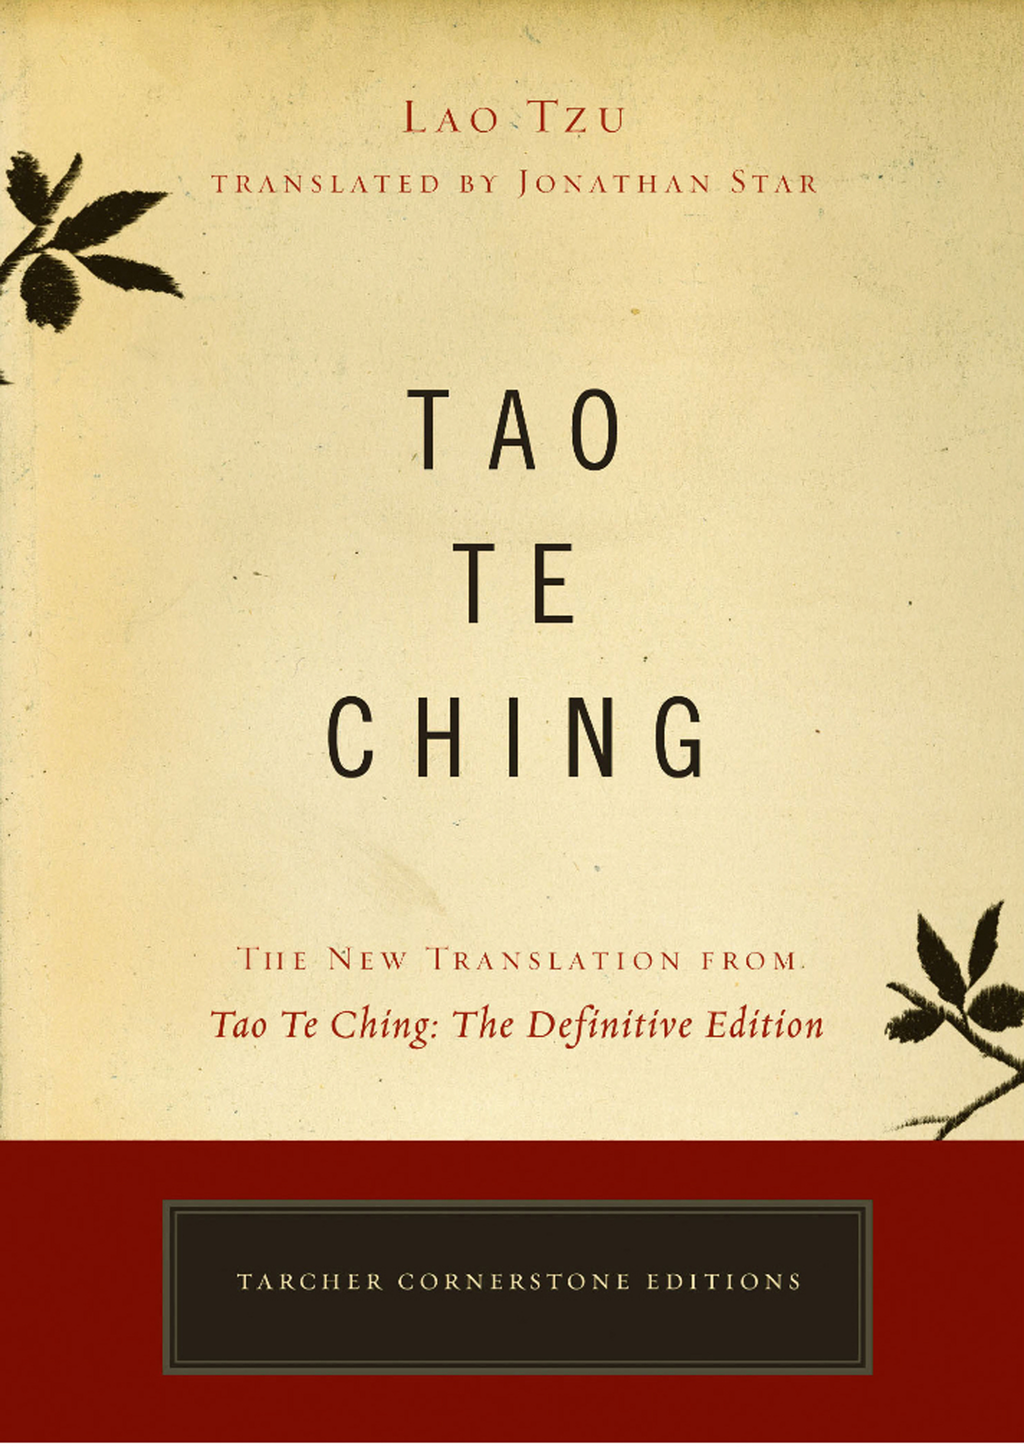 lao tzu books found the speculations on metaphysics r b blakney richard john lynn lao tzu tao te ching